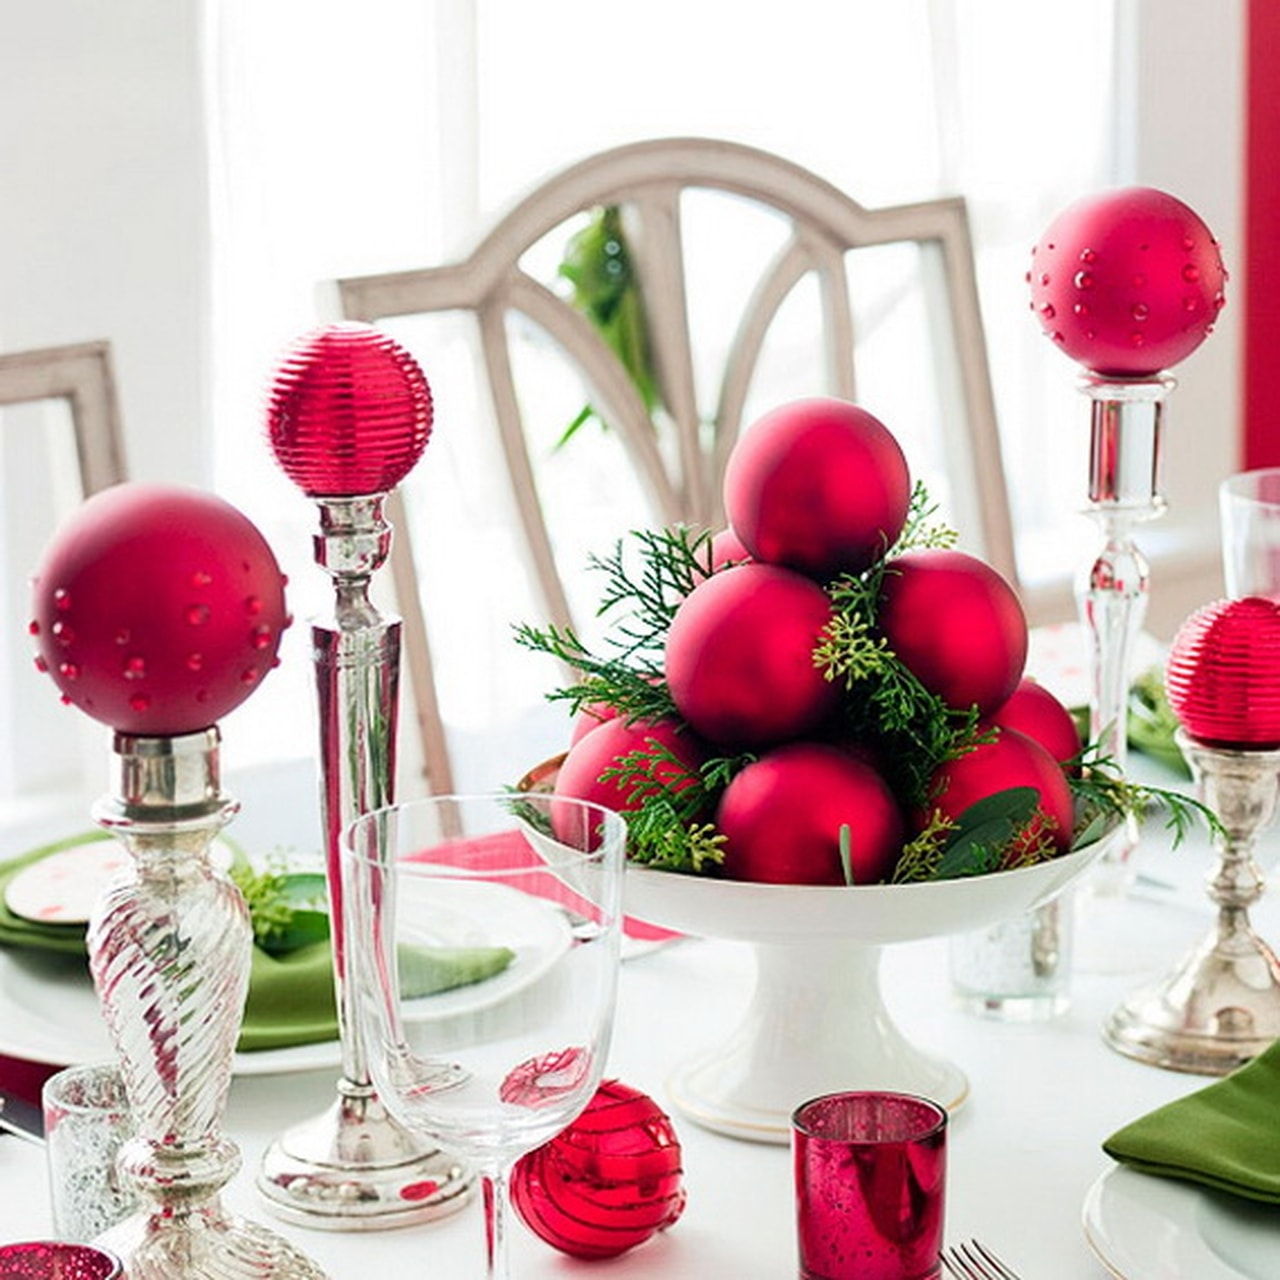 Holiday Decor Ideas Christmas: 50 Best DIY Christmas Table Decoration Ideas For 2016